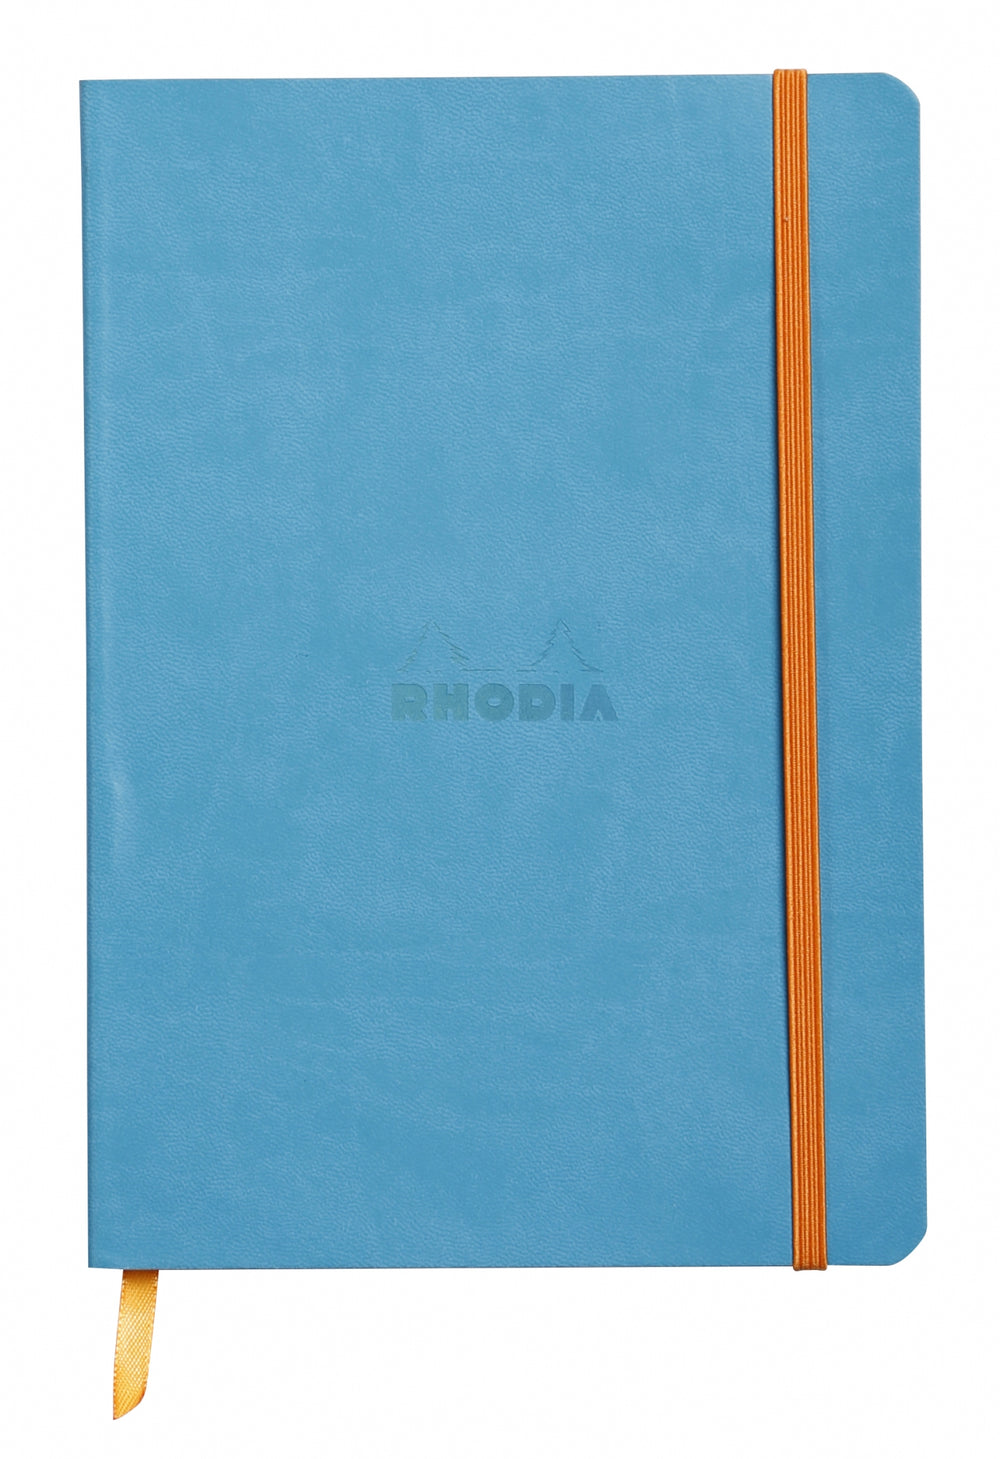 "Rhodia Soft Cover Rhodiarama 7.5"" x 9.75"" Notebook Turquoise"